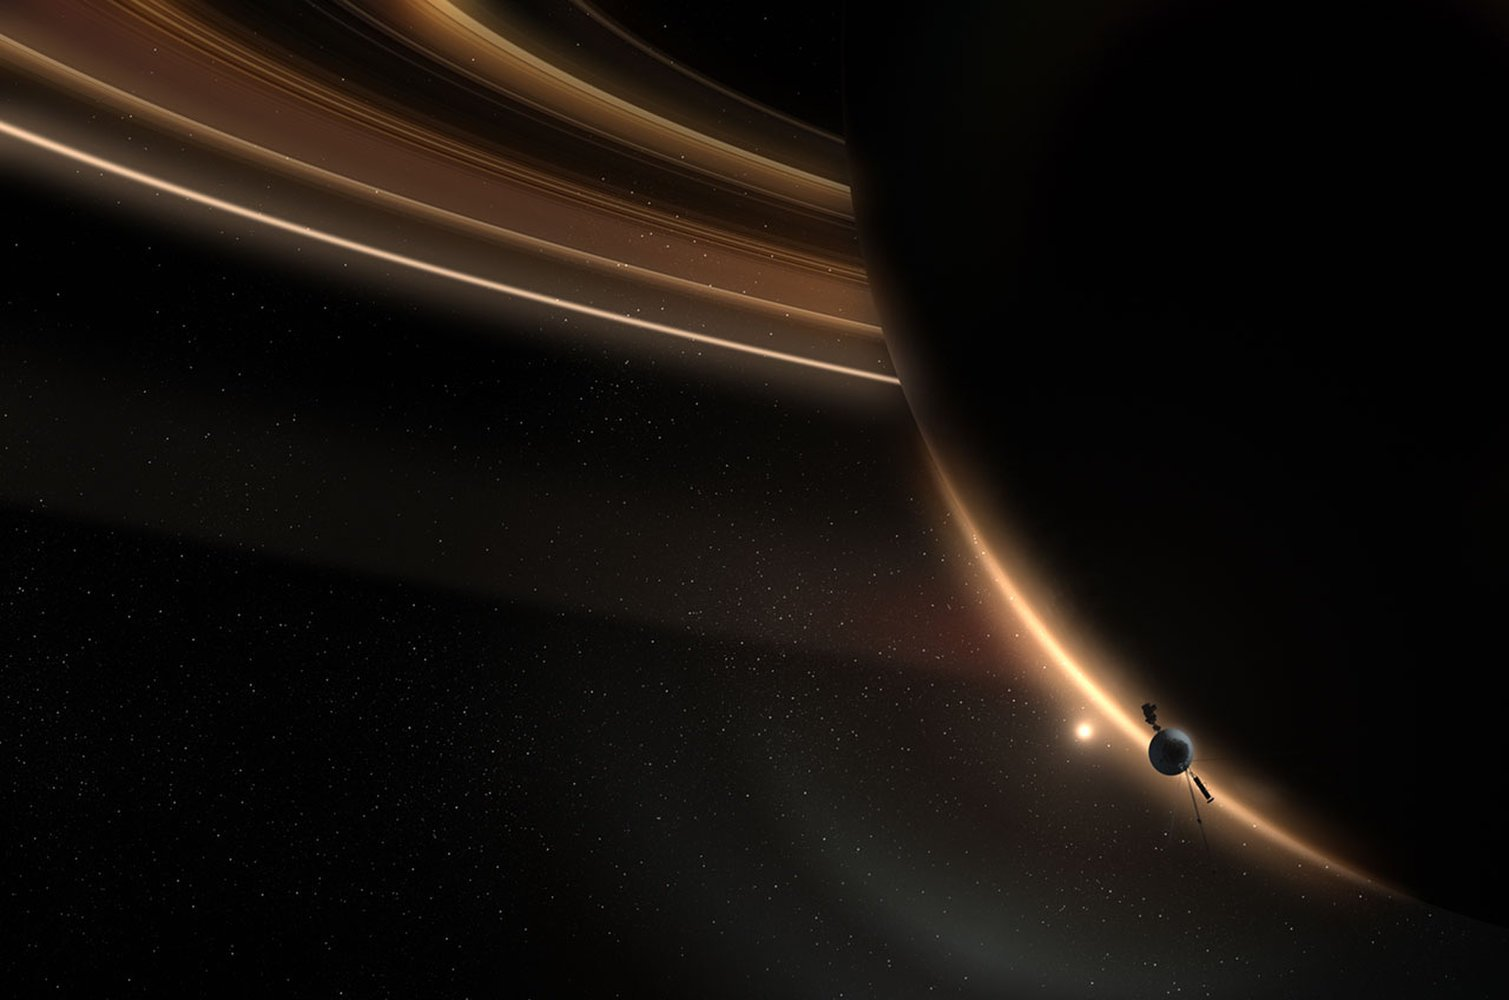 'The Farthest': Journey into Interstellar Space with a Free Screening and Panel Talk https://t.co/Dh8QVdKAeL https://t.co/Ldd6IVcdfi